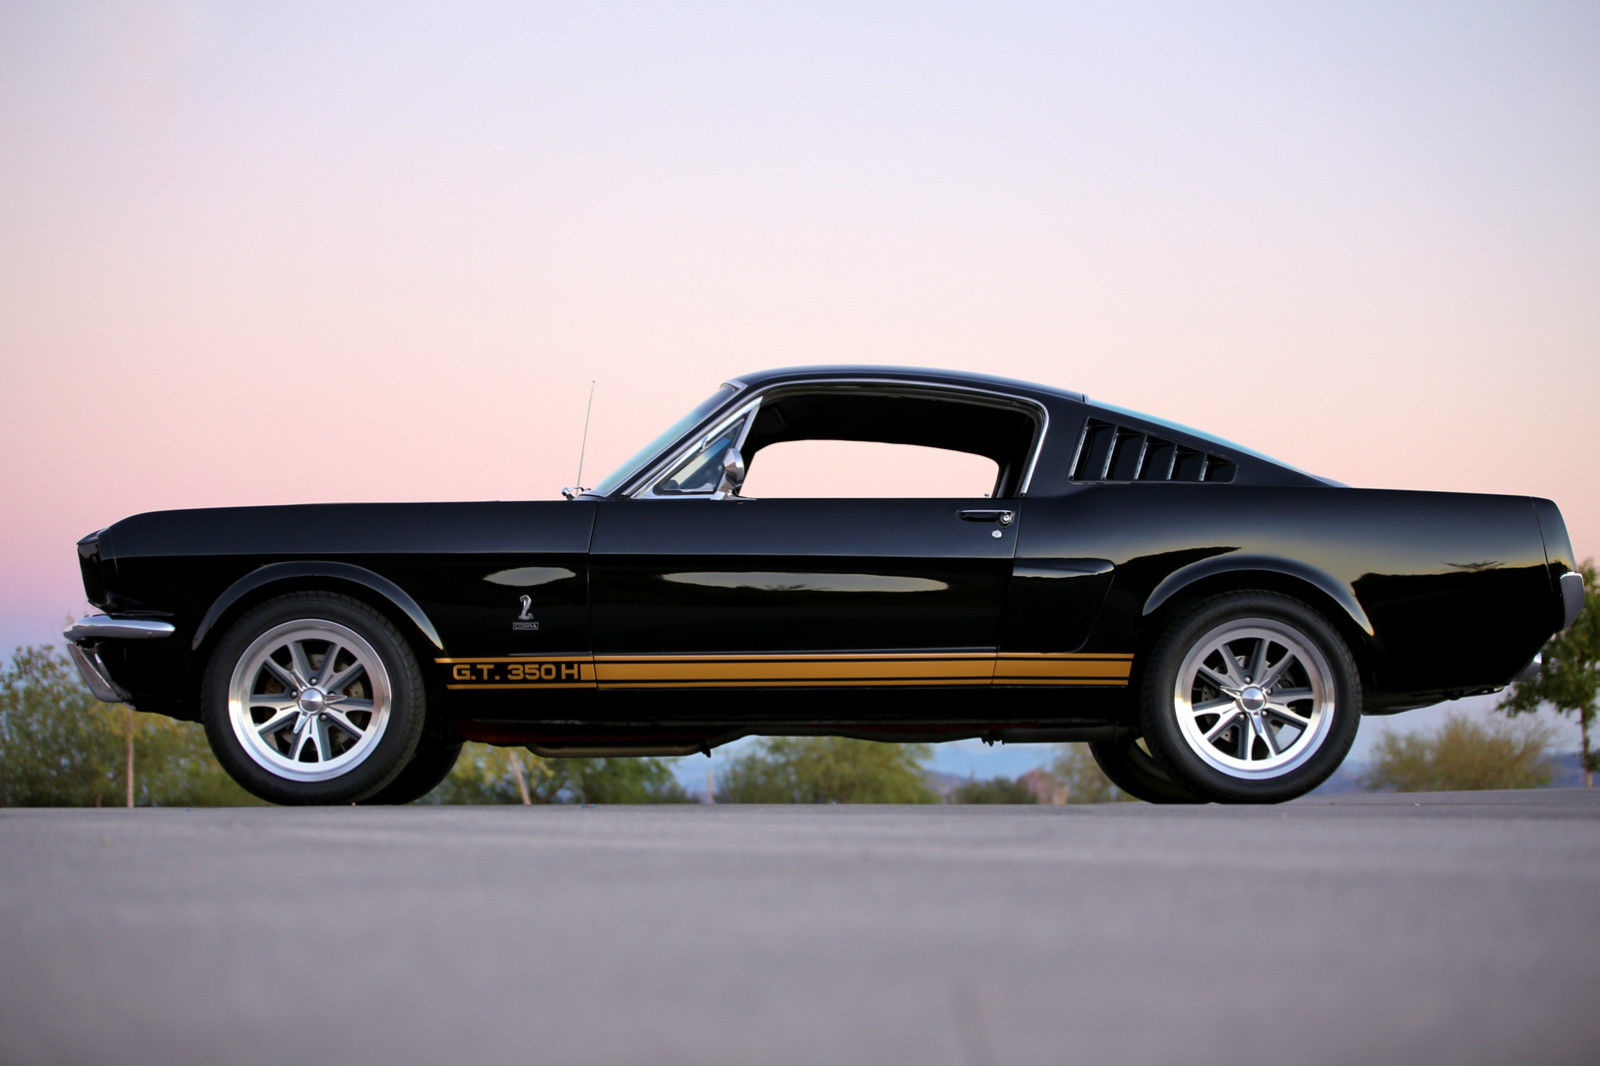 Ford Mustang Gt H Shelby Hertz Tribute Fastback A Code Spd W Disc Brk on 1965 Ford Mustang Vin Number Location